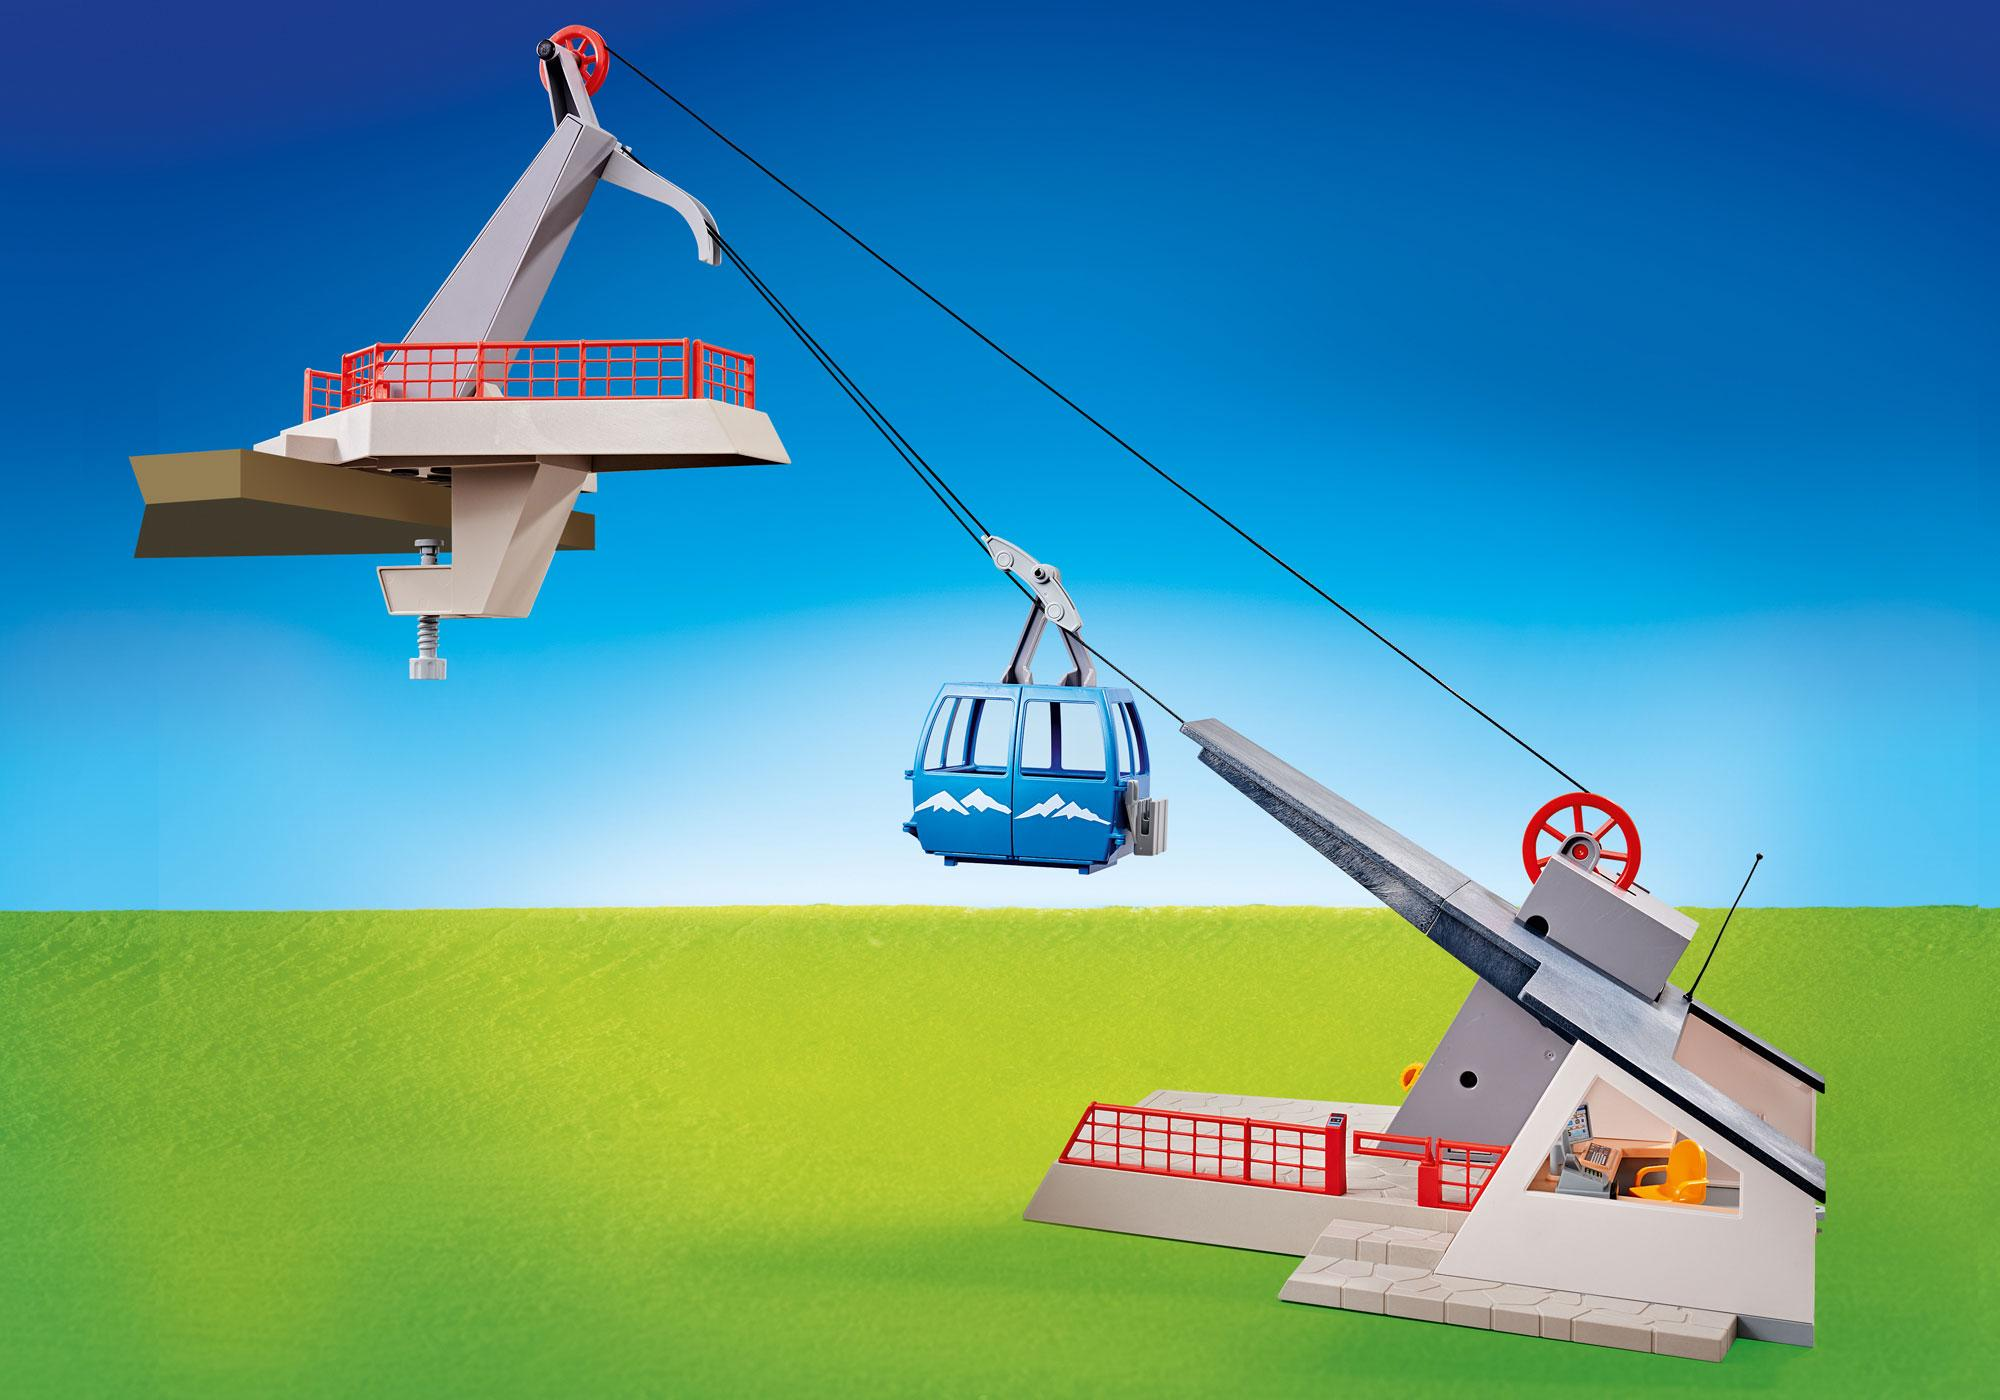 http://media.playmobil.com/i/playmobil/9830_product_detail/Seilbahn mit Bergstation